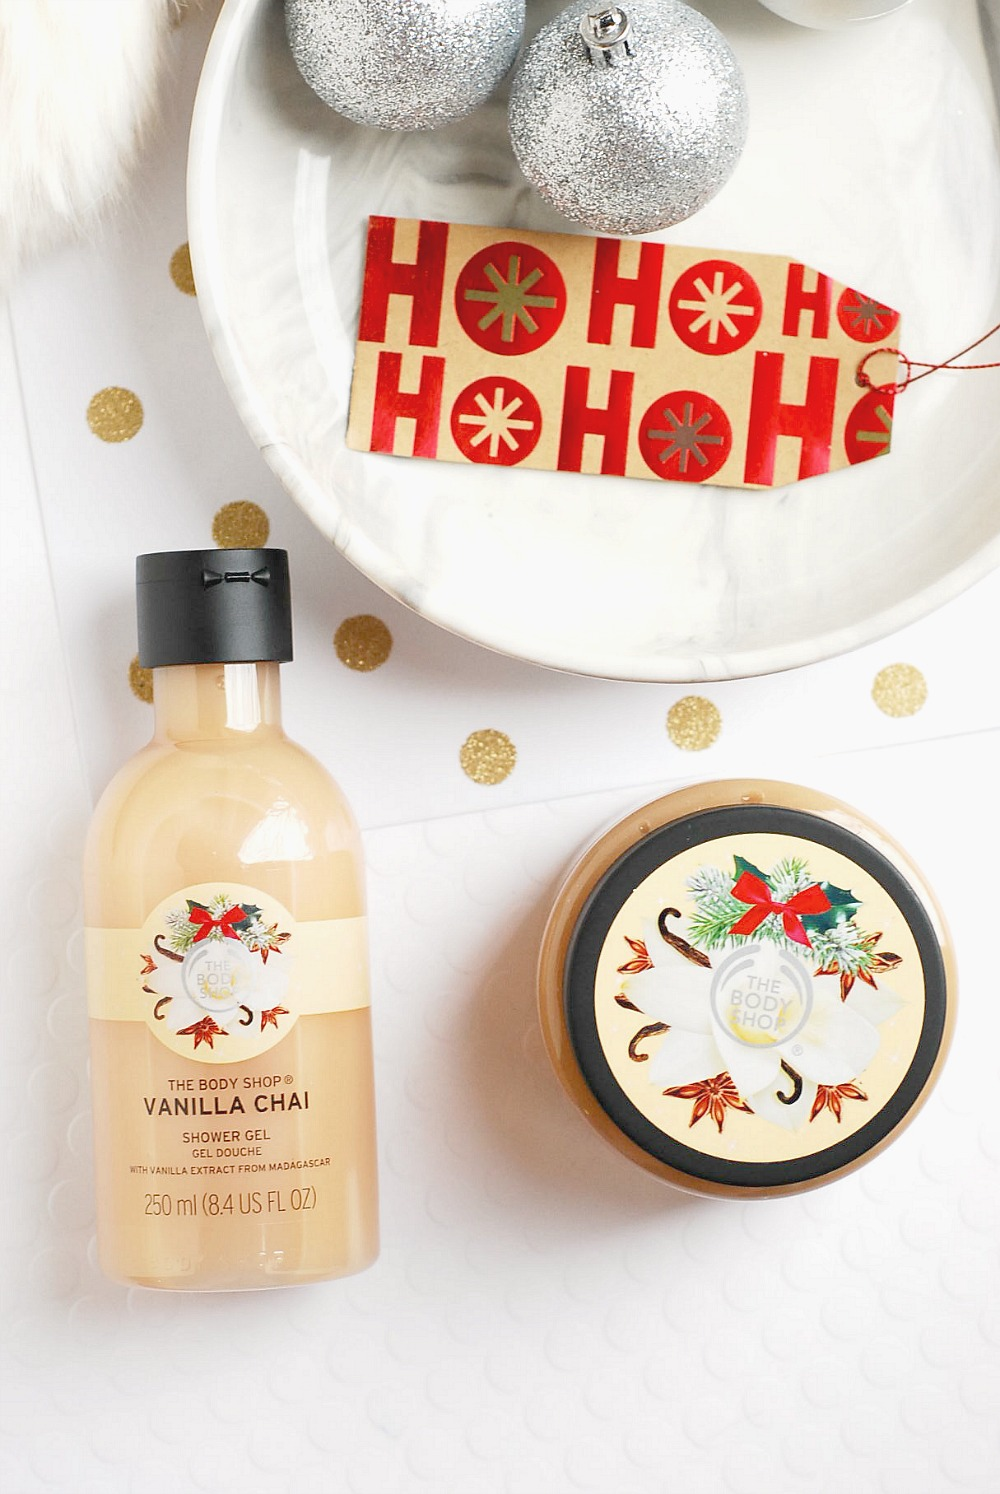 The Body Shop Vanilla Chai review shower gel body scrub